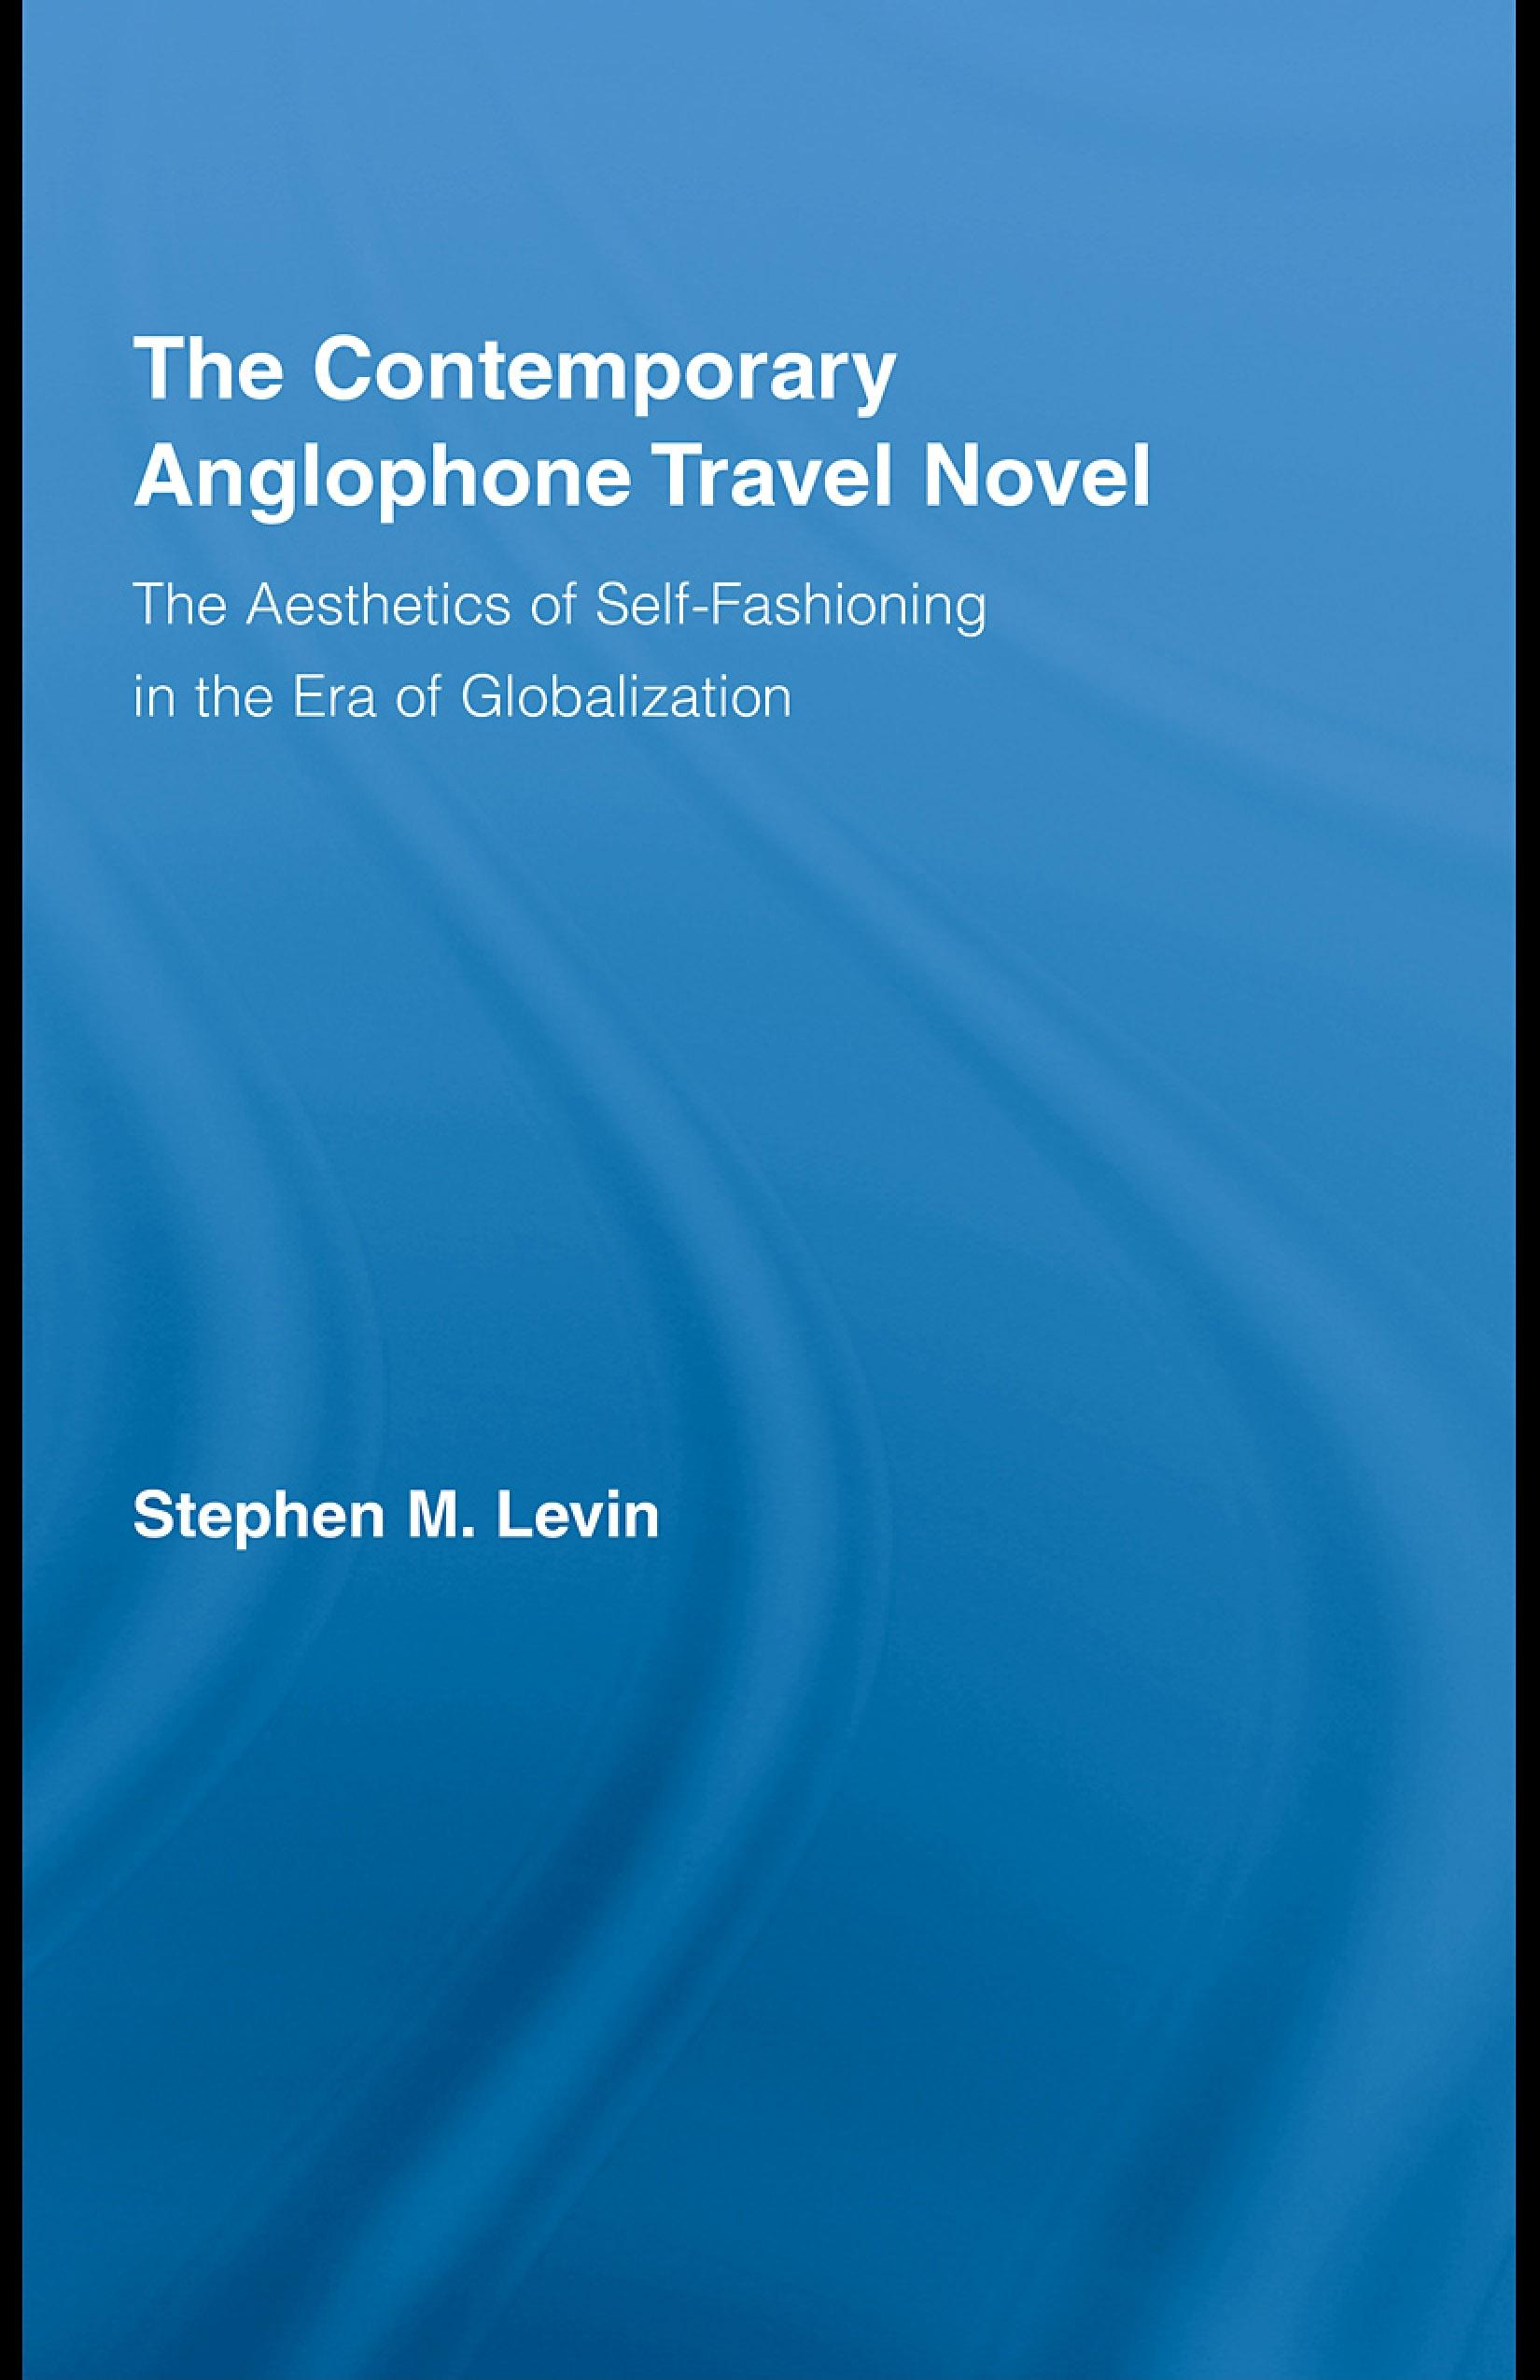 The Contemporary Anglophone Travel Novel: The Aesthetics of Self-Fashioning in the Era of Globalization EB9780203928561